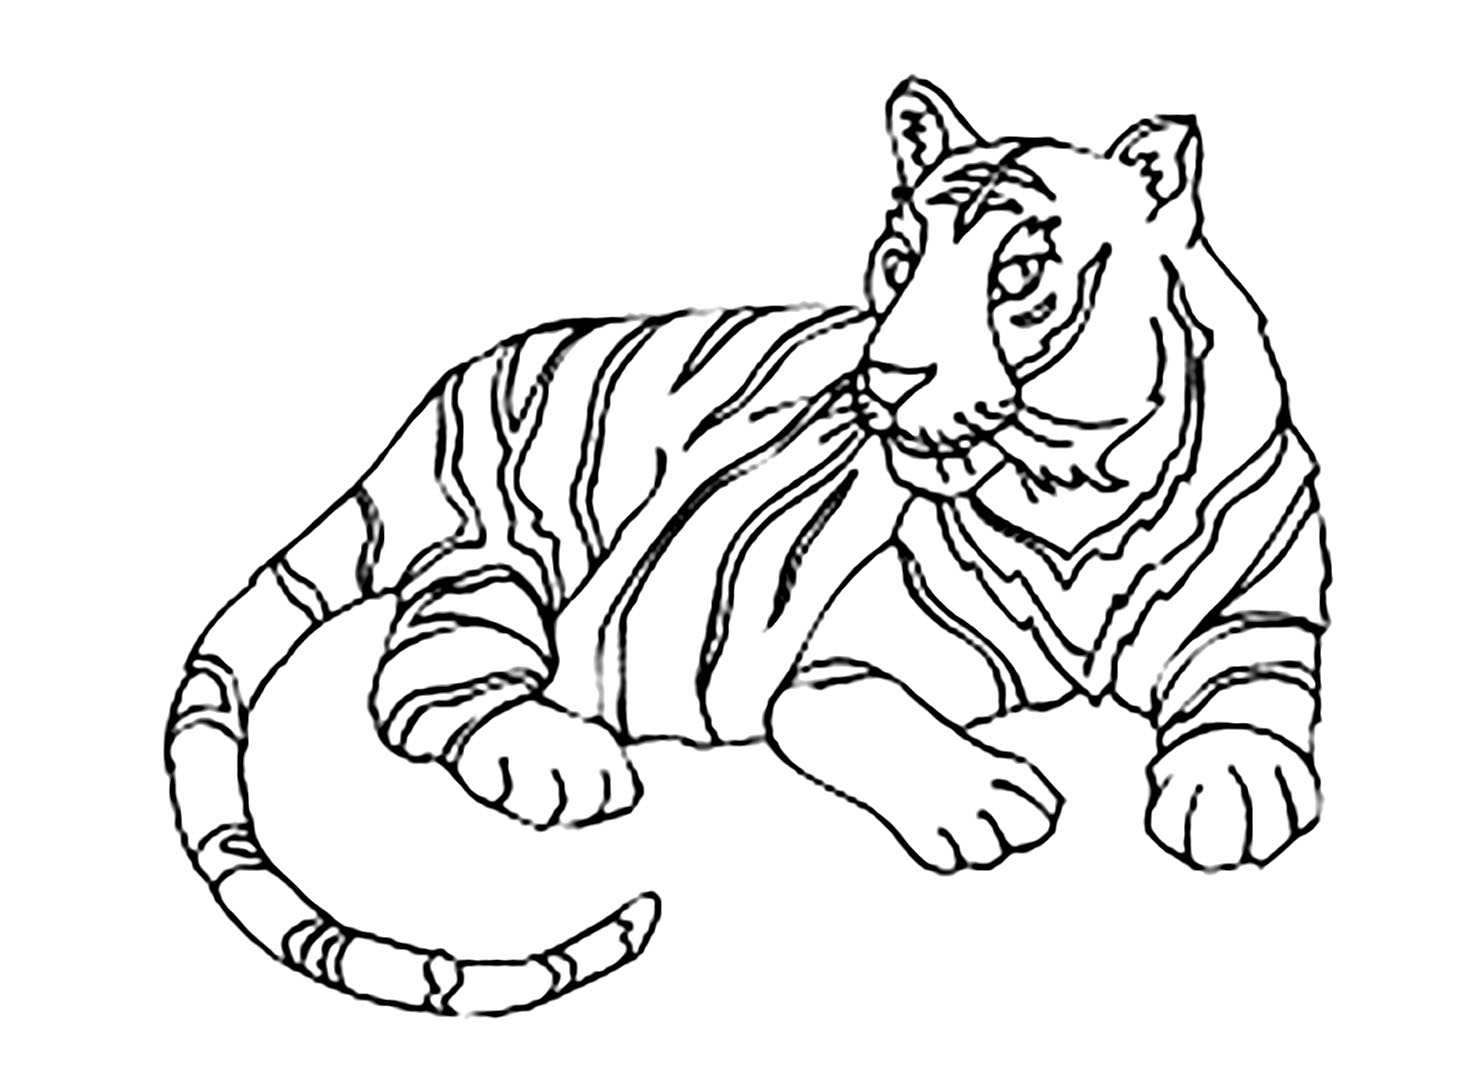 coloring picture of tiger tiger coloring pages free download on clipartmag of tiger coloring picture